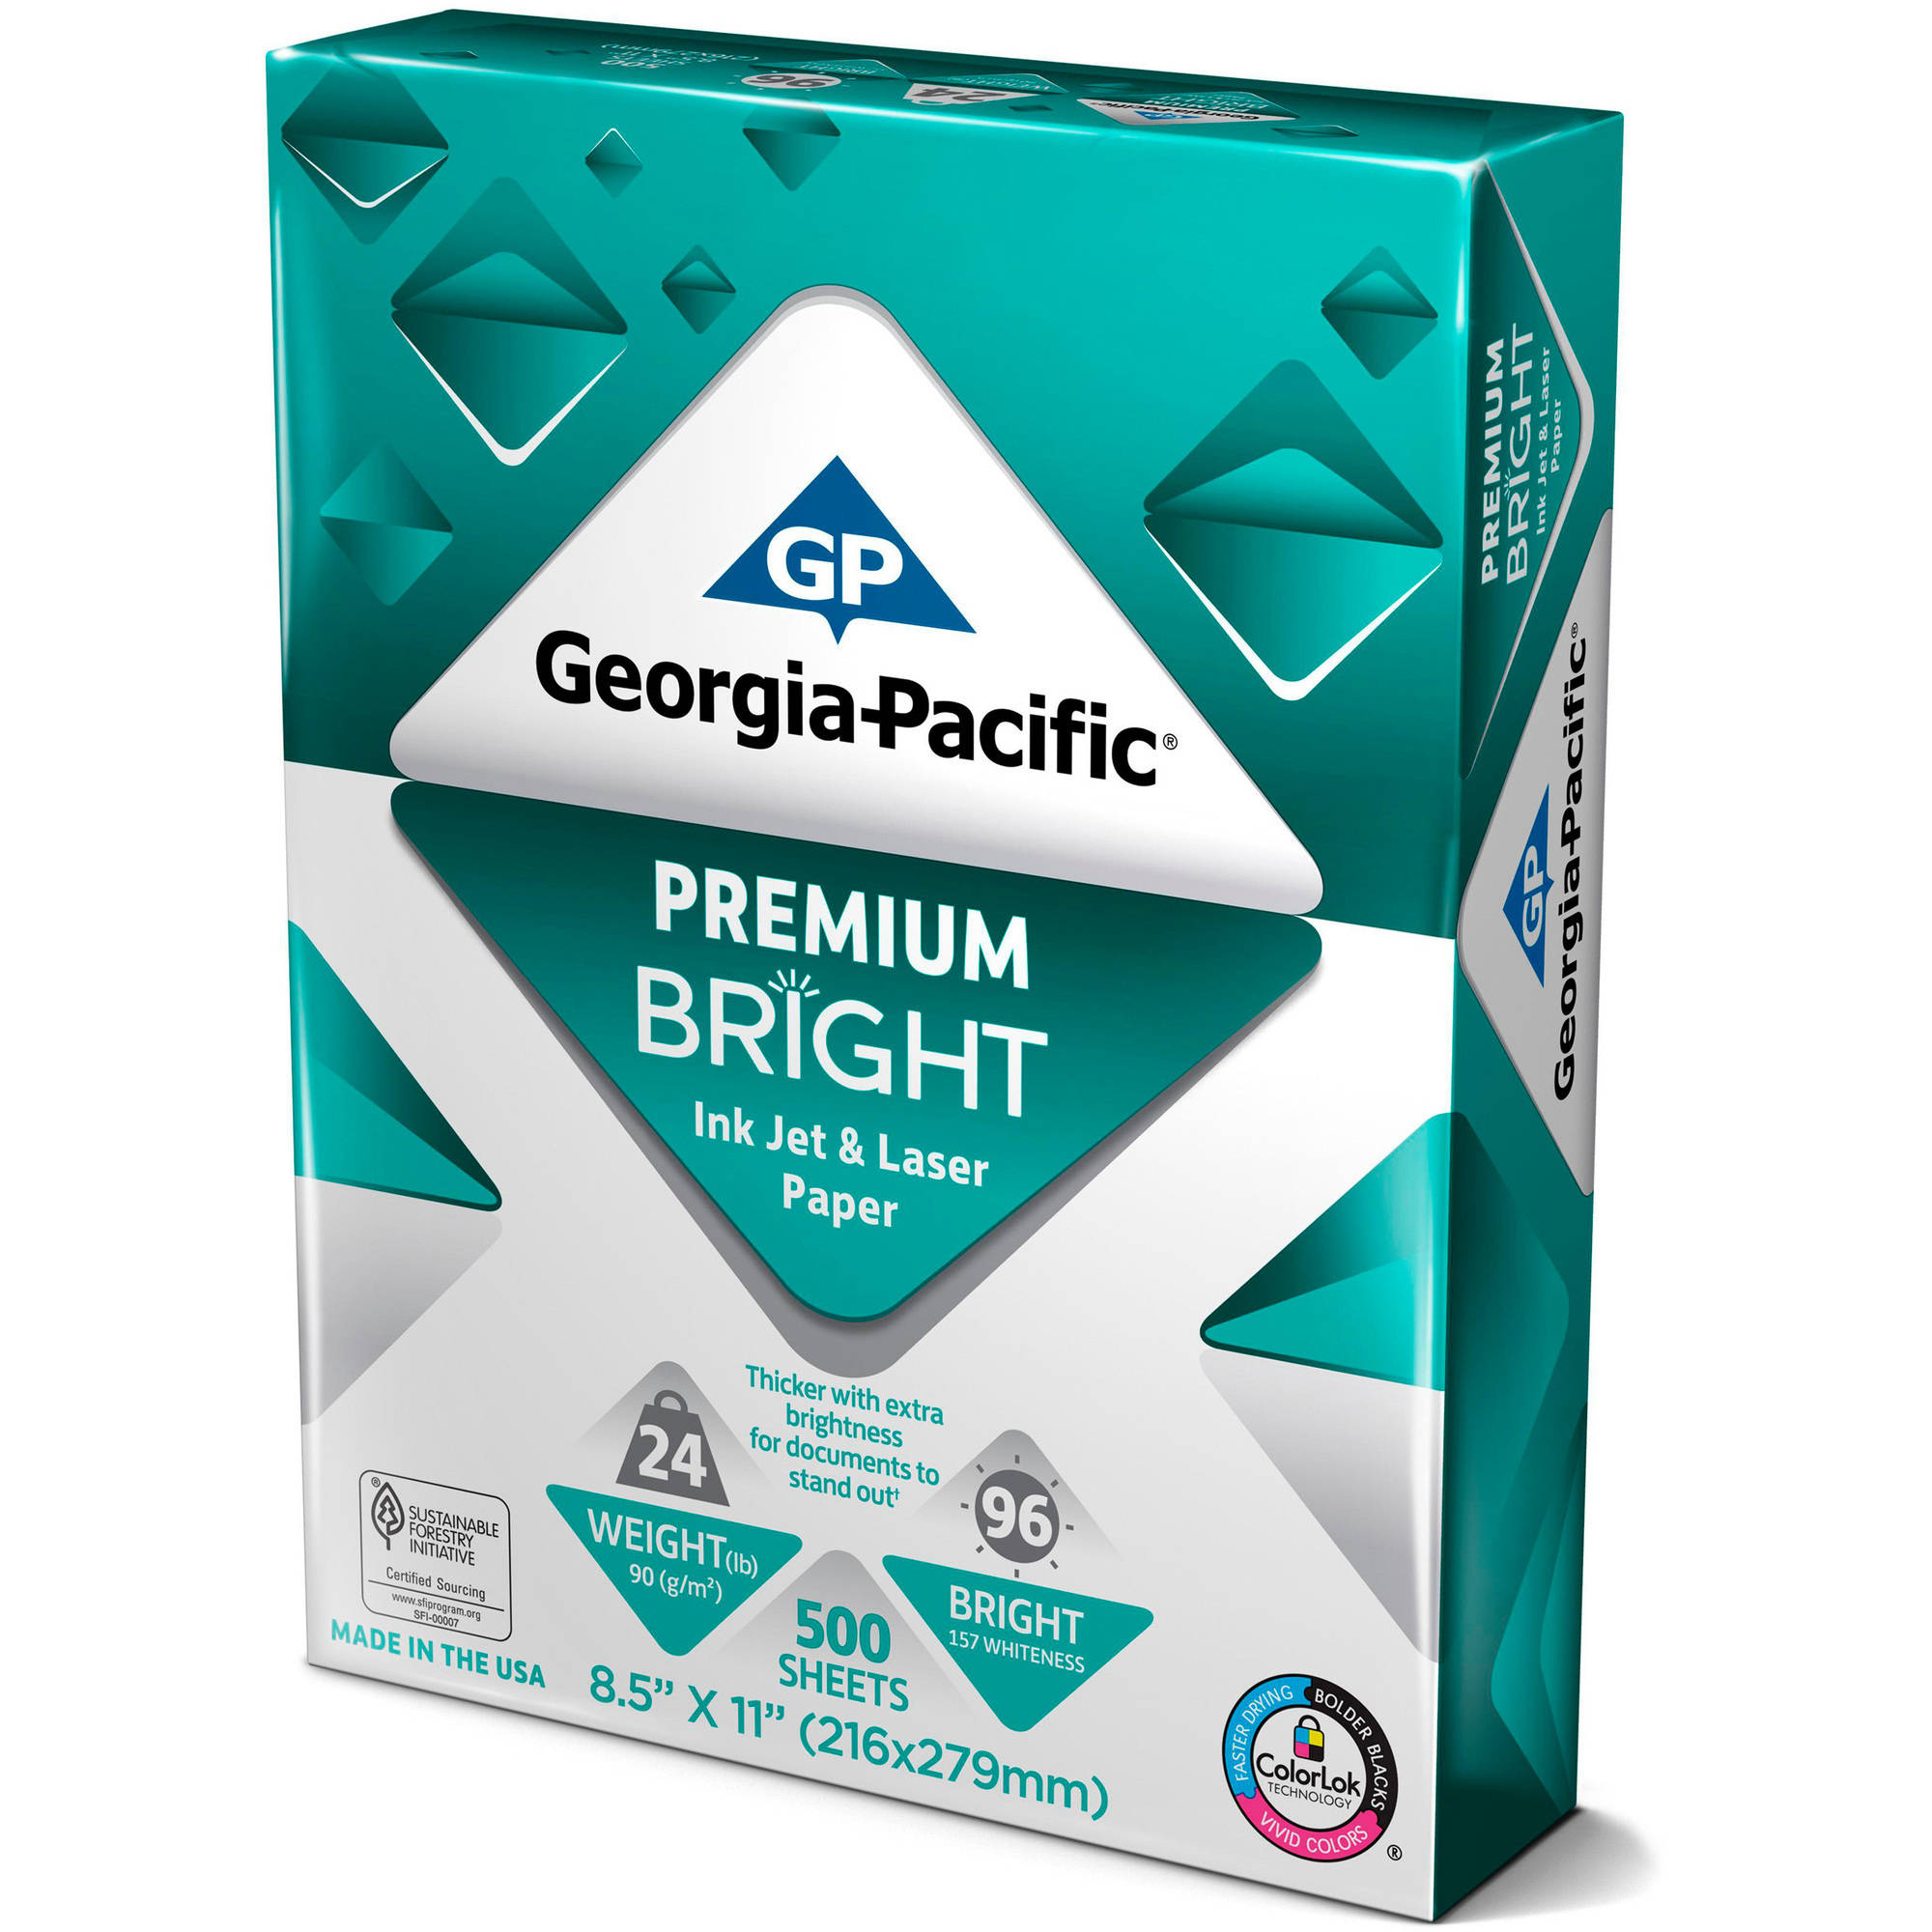 "Georgia-Pacific Premium Bright Inkjet and Laser Paper, 8.5"" x 11"", 24 lb, 96 Brightness, 500 Sheets"